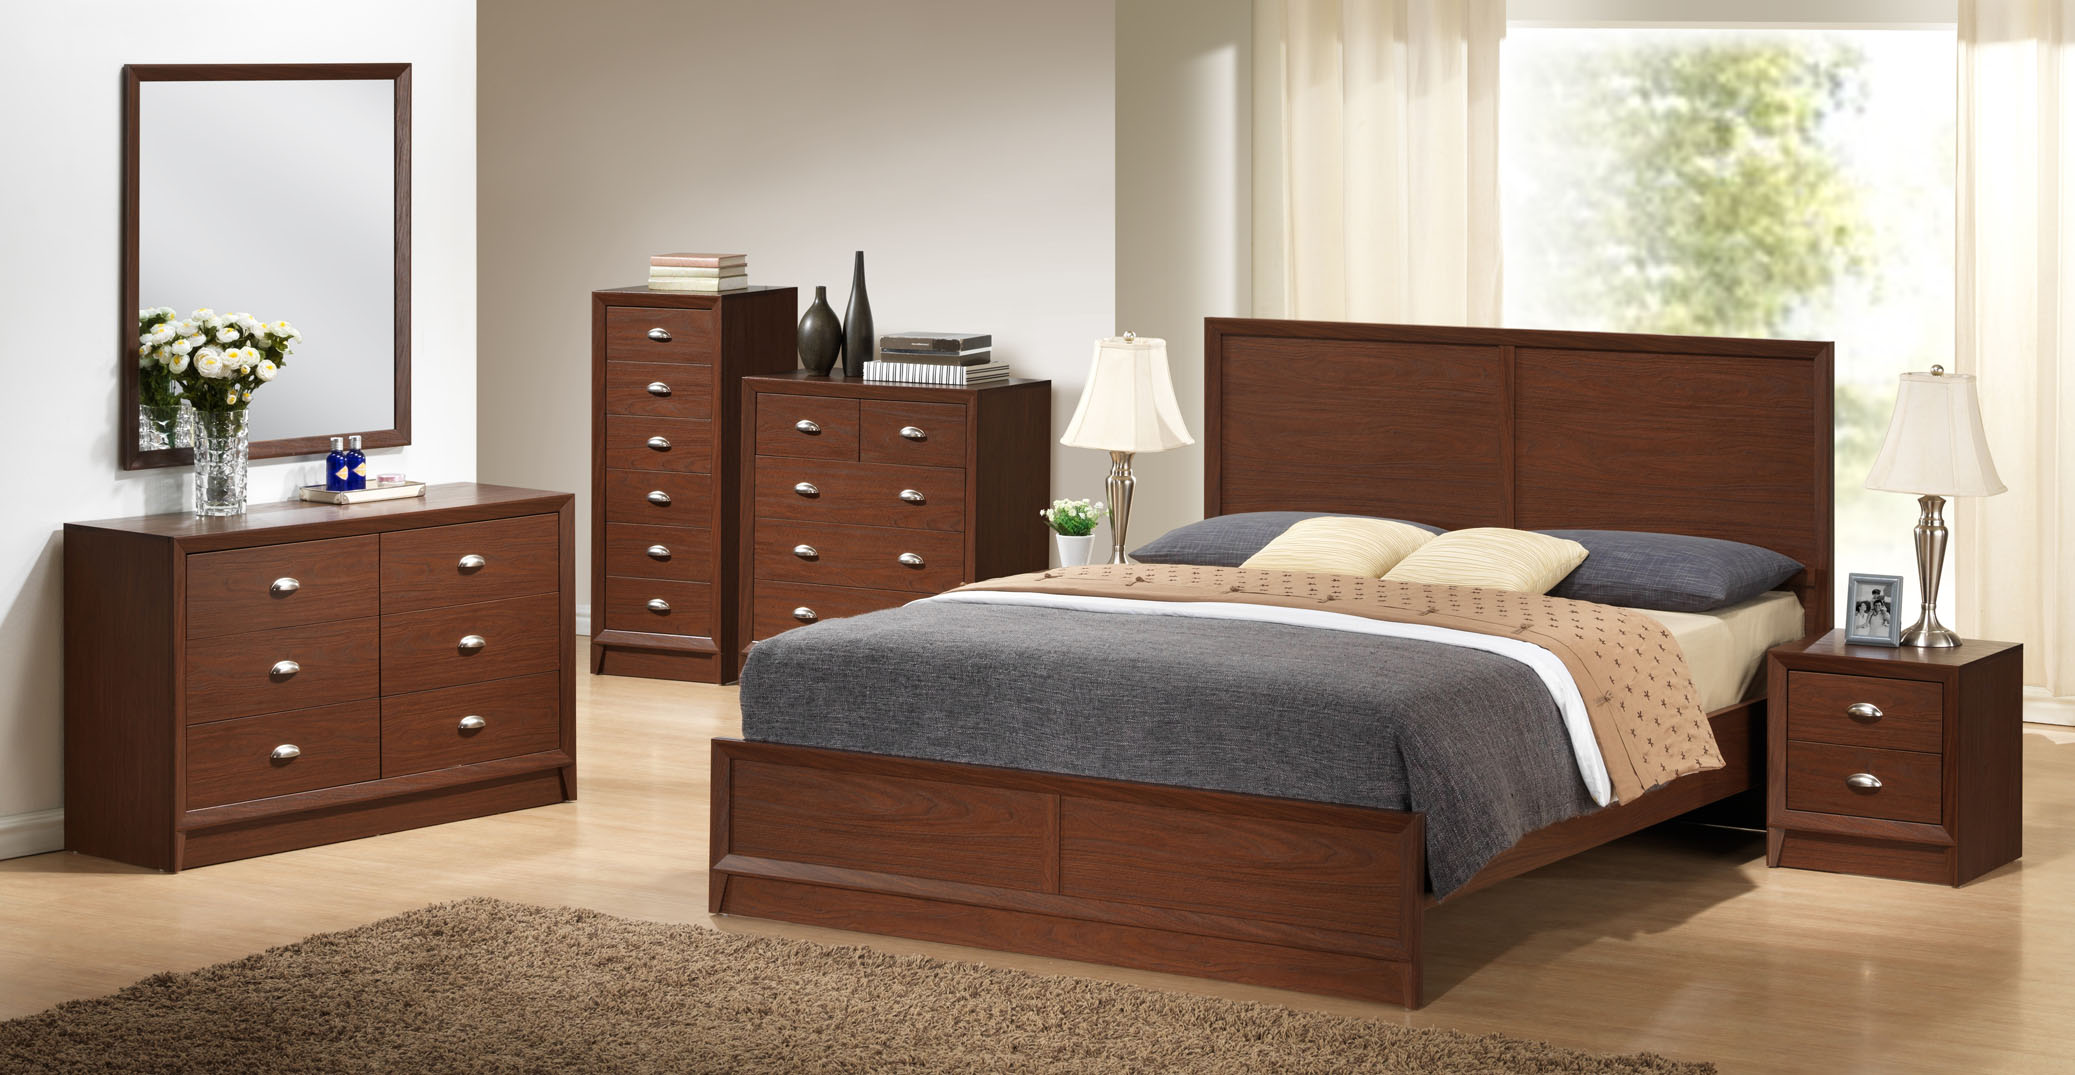 Furniture Manufacturer In Malaysia: Wooden Furniture For A